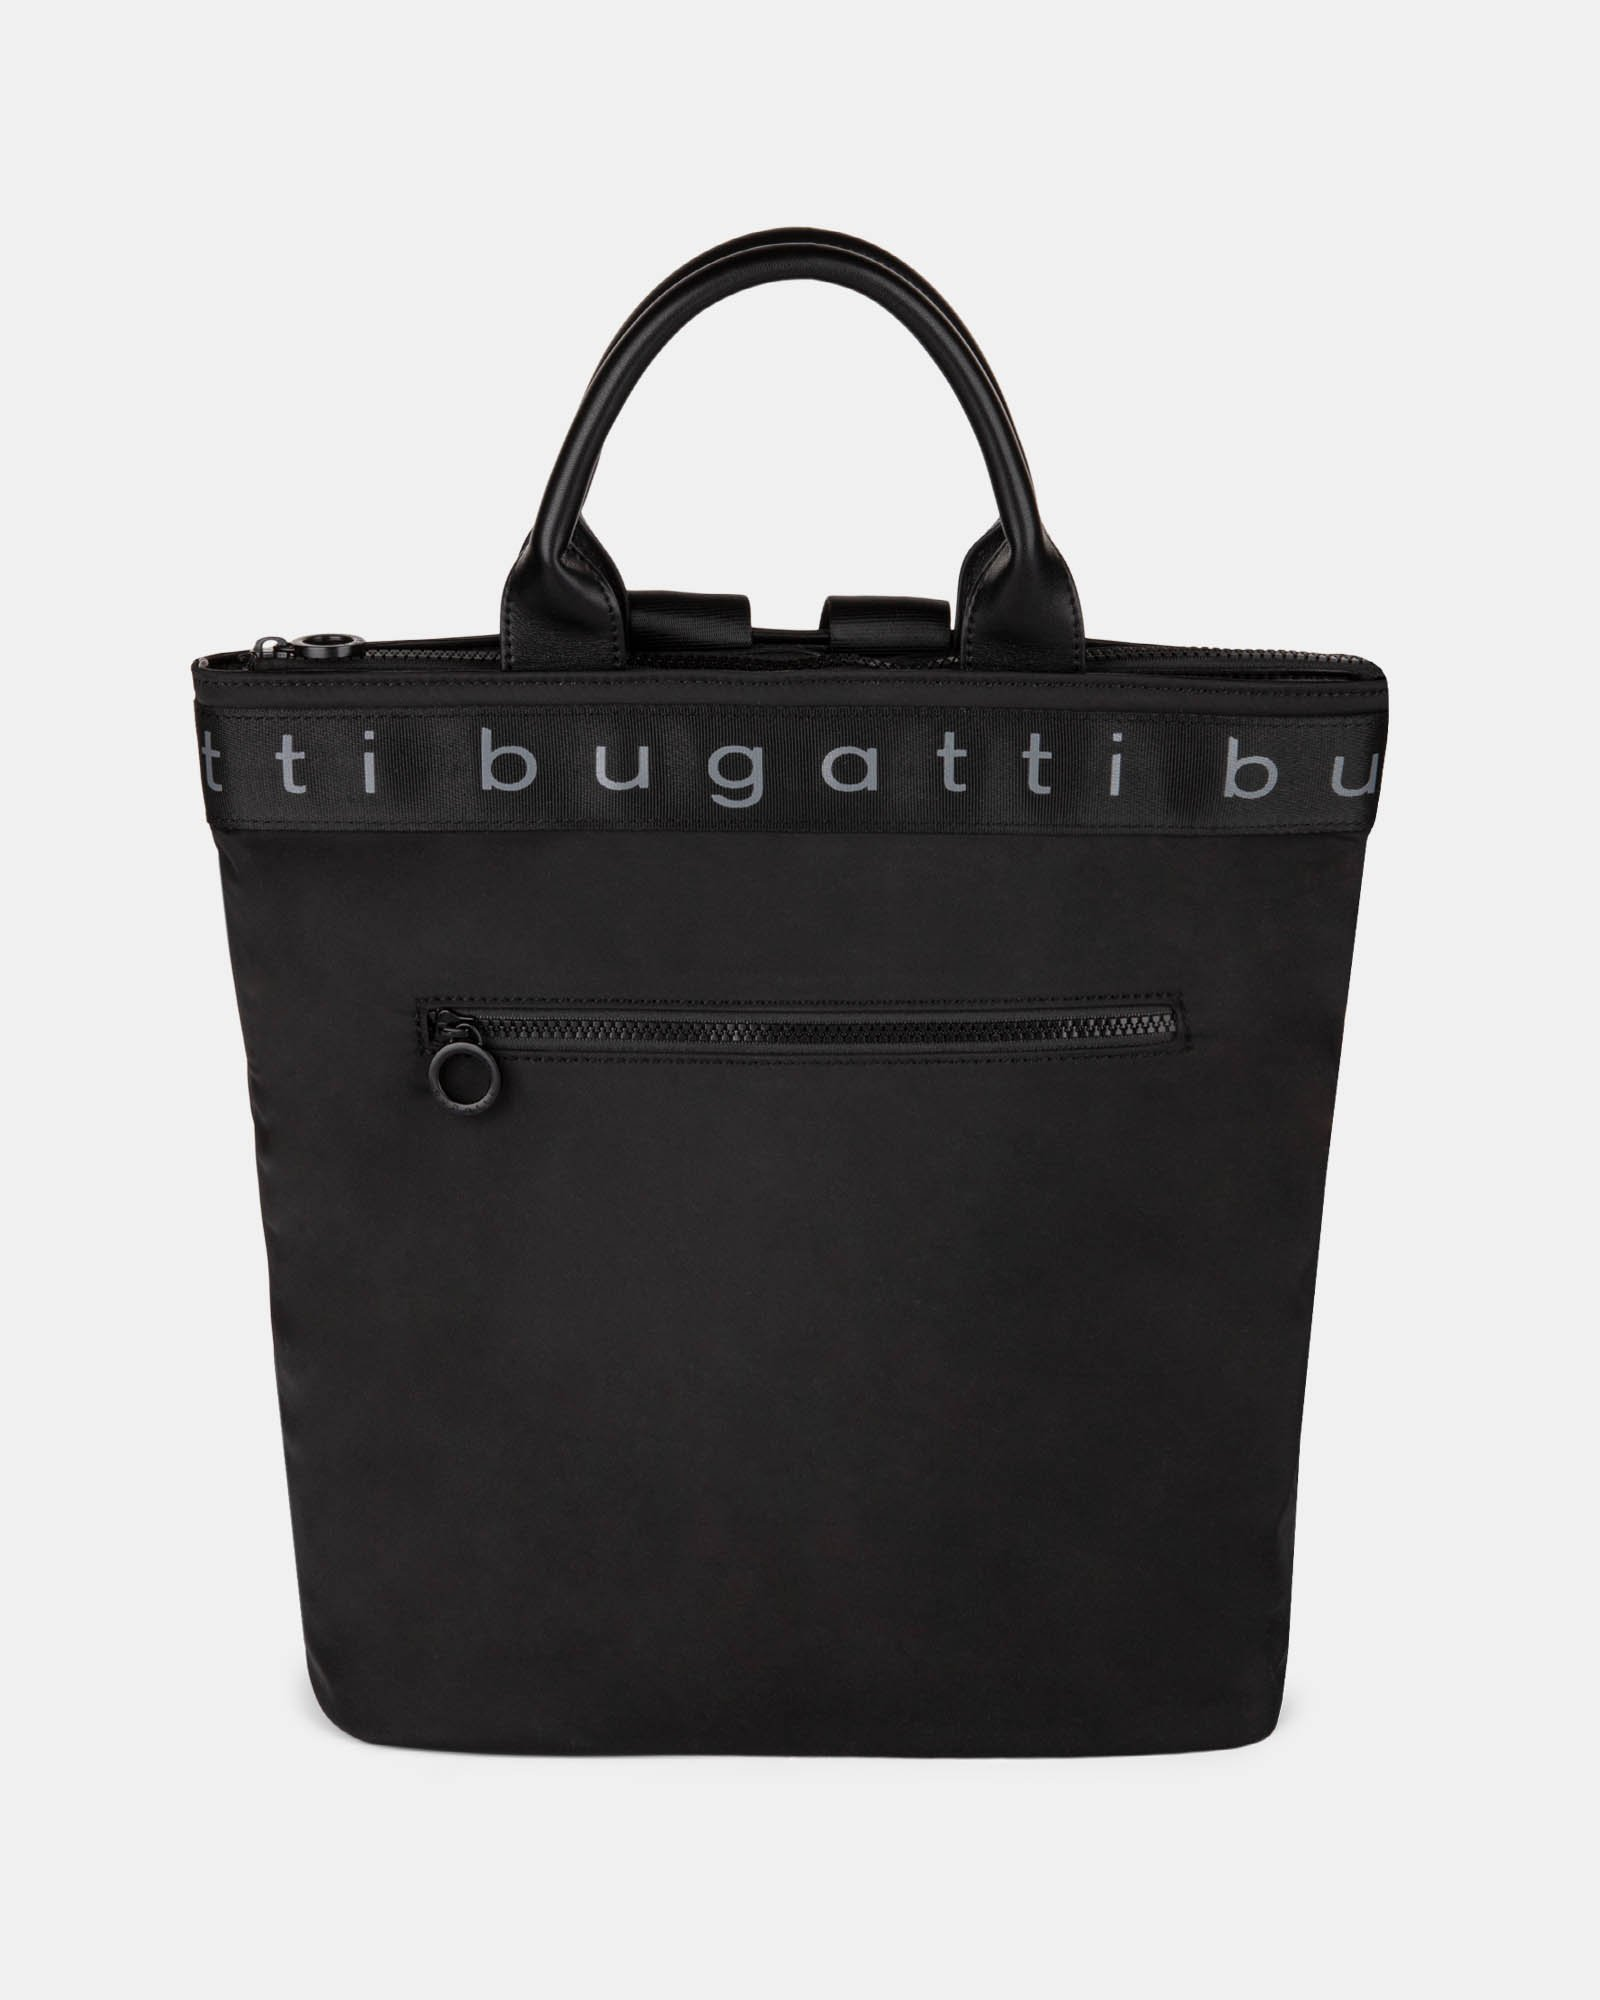 Tofino - Convertible Backpack/tote with Top zippered opening - Black  - Bugatti - Zoom